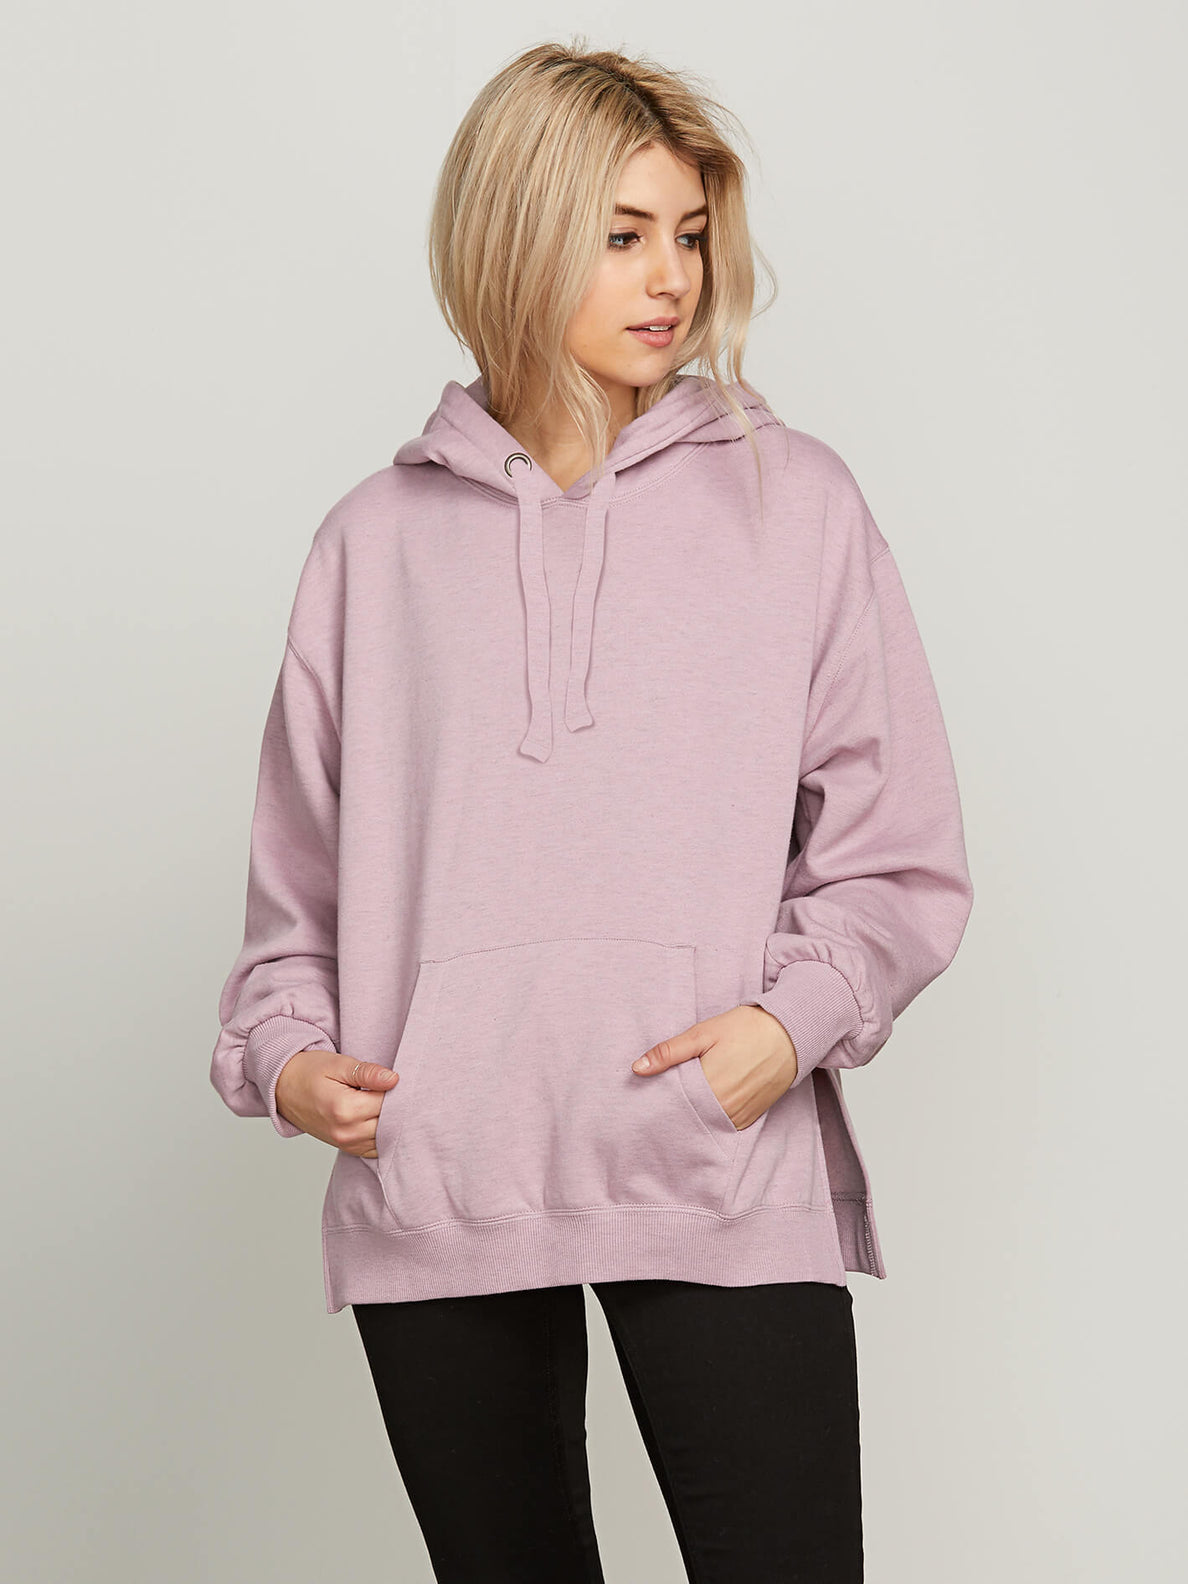 Need To Vent Hoodie In Violet Dust, Front View